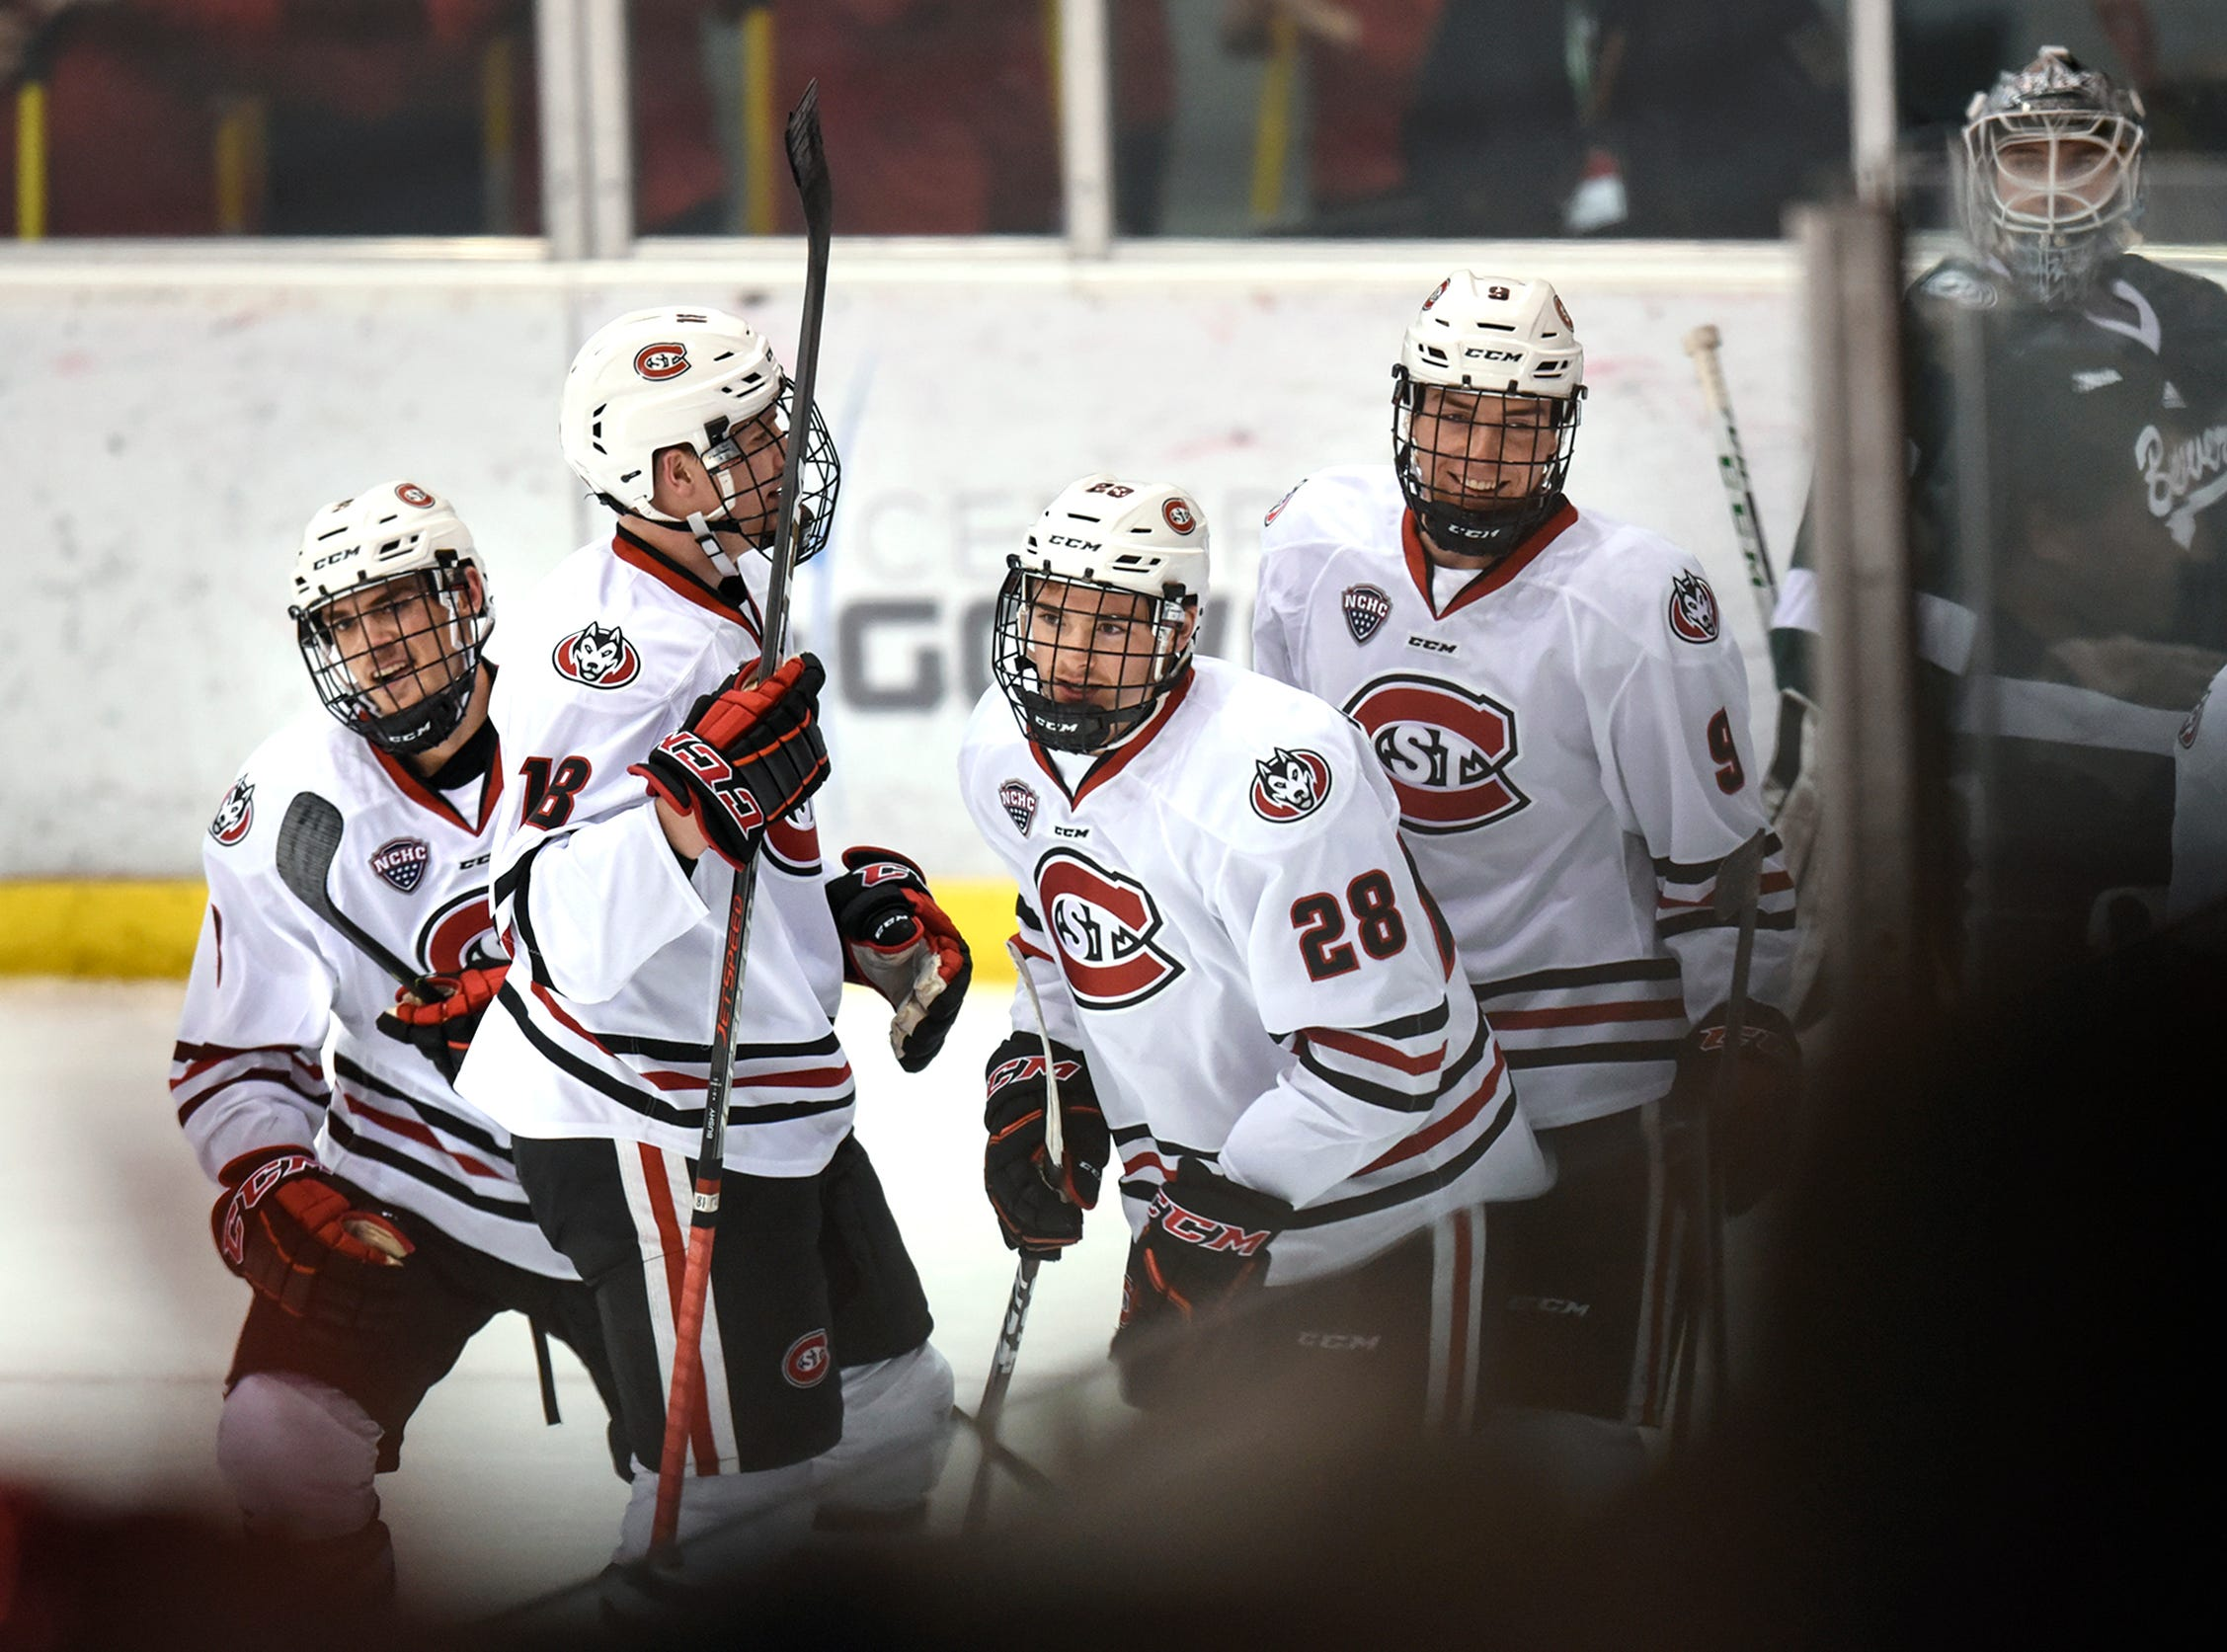 SCSU skates against Bemidji State Saturday